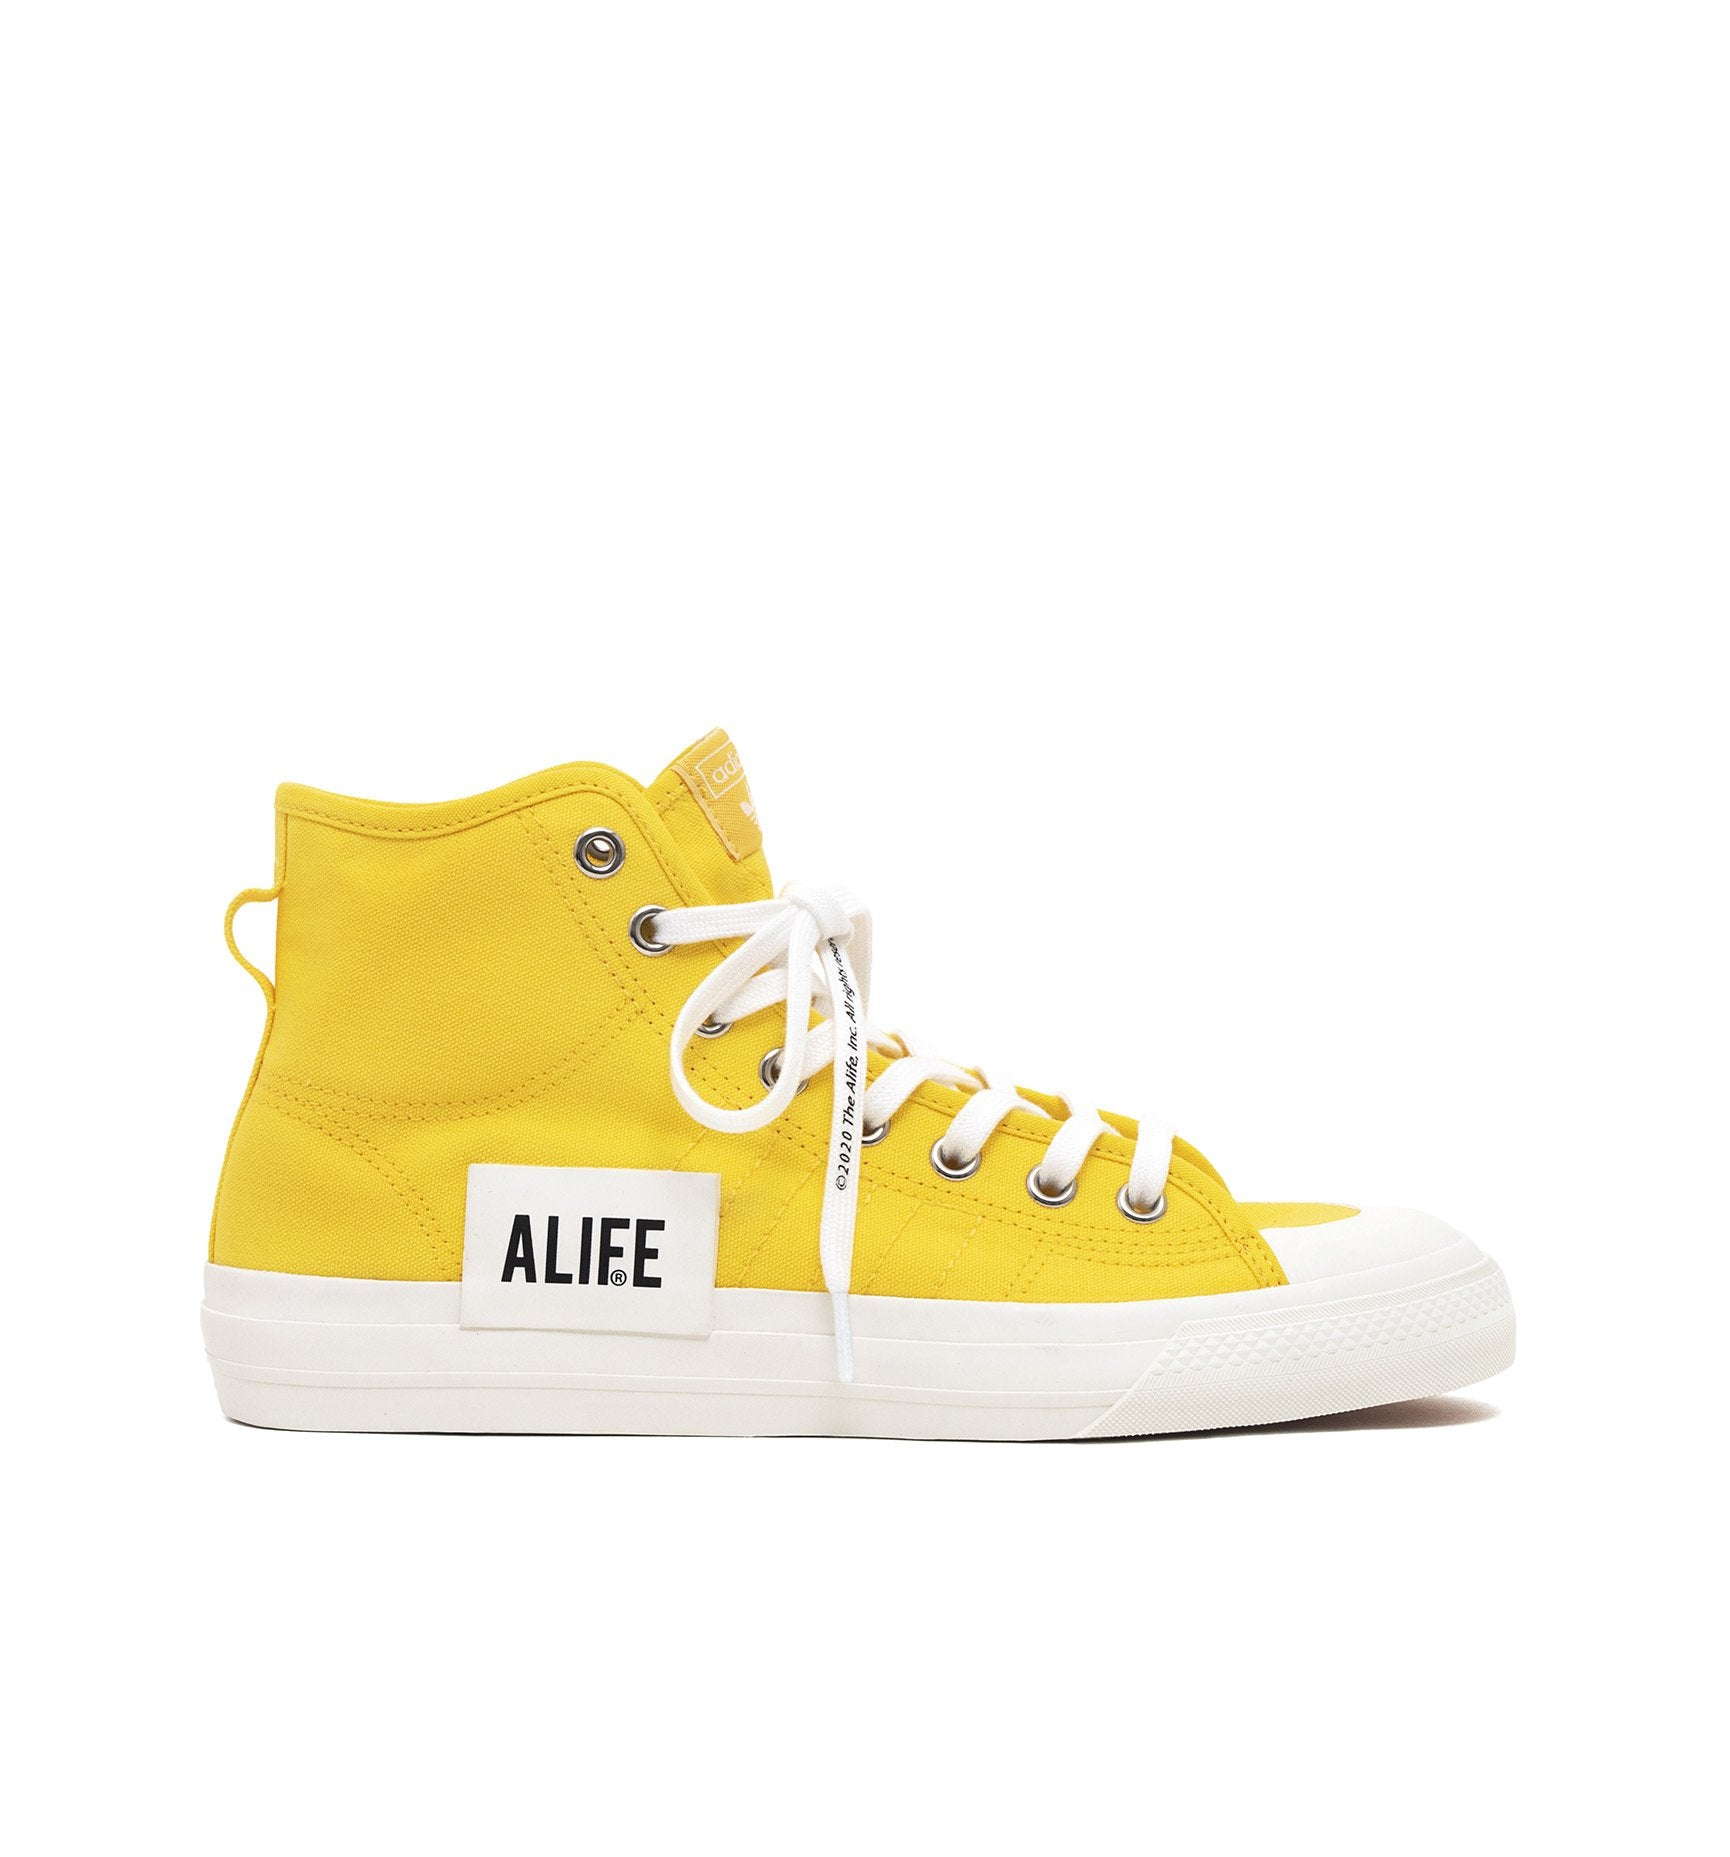 Alife adidas Nizza Yellow - 1_FX2619